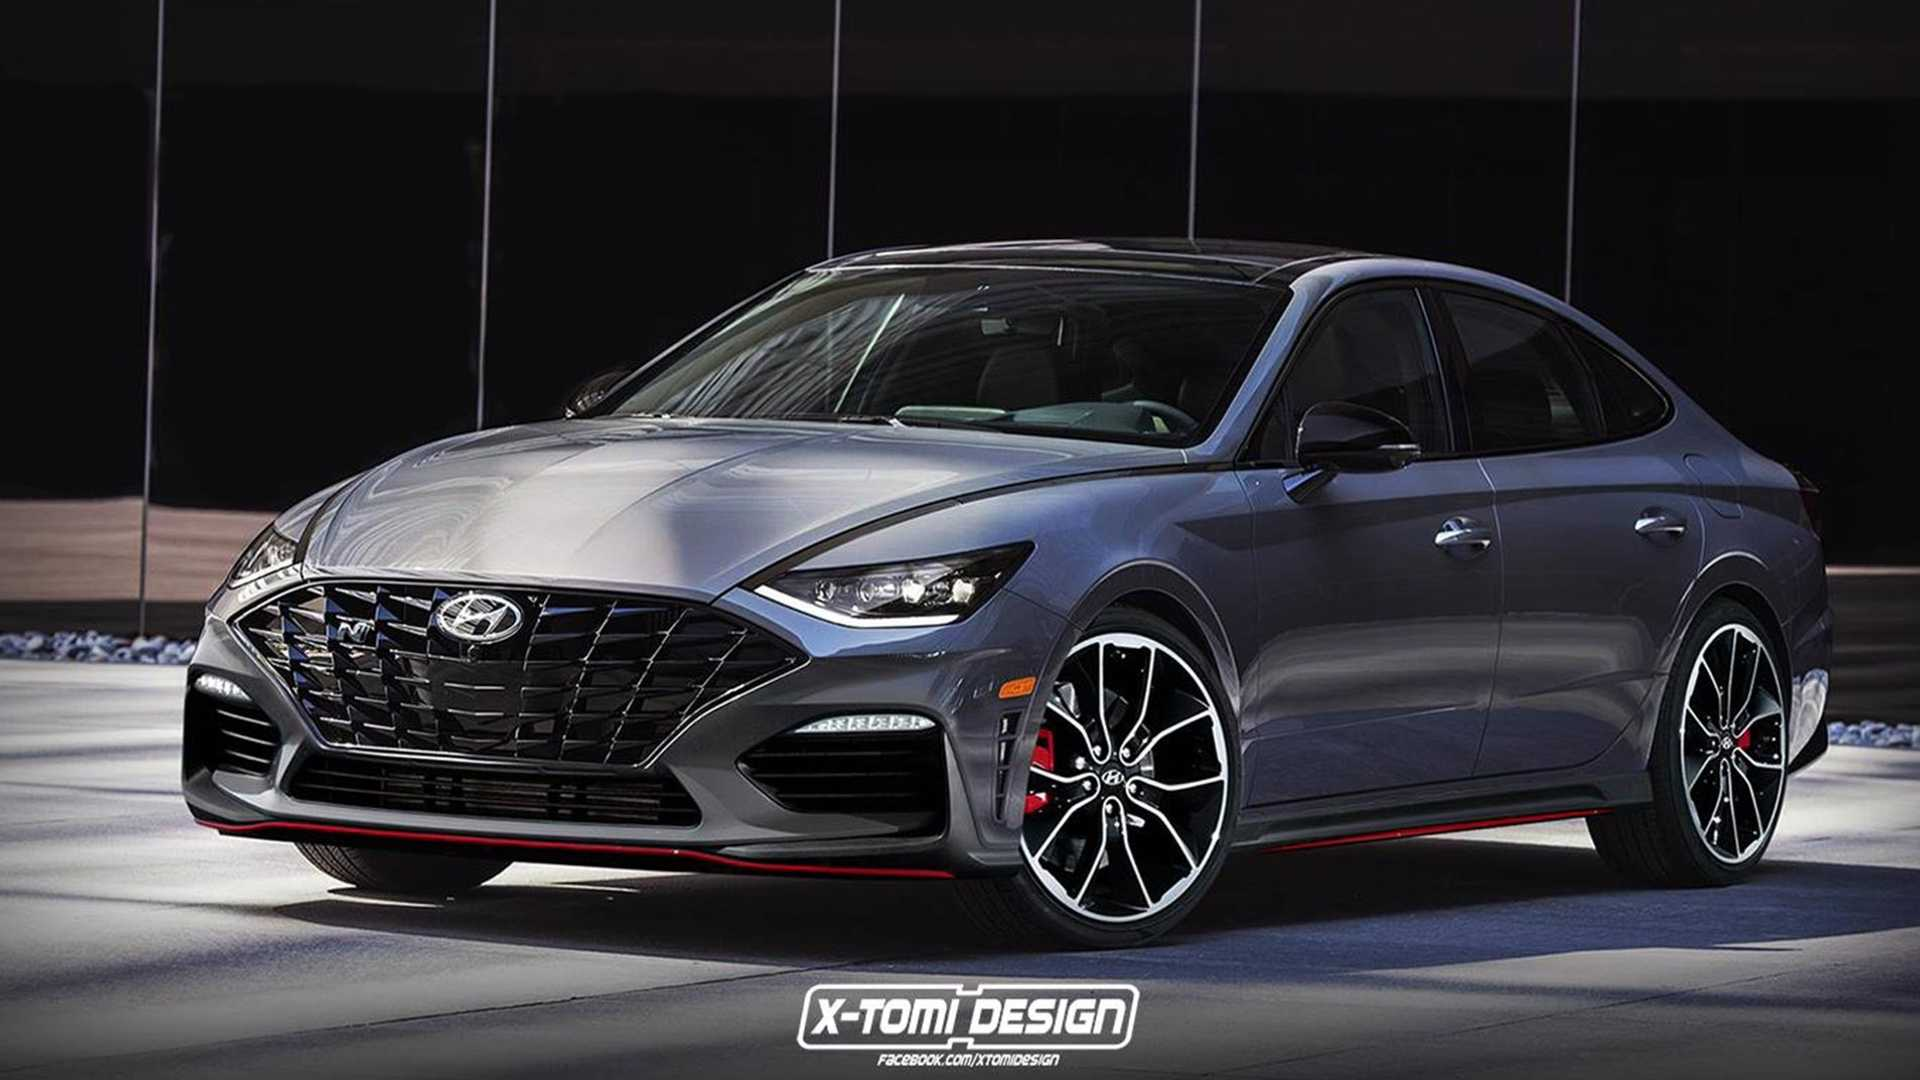 35 Great Pictures Of The 2020 Hyundai Sonata Images with Pictures Of The 2020 Hyundai Sonata